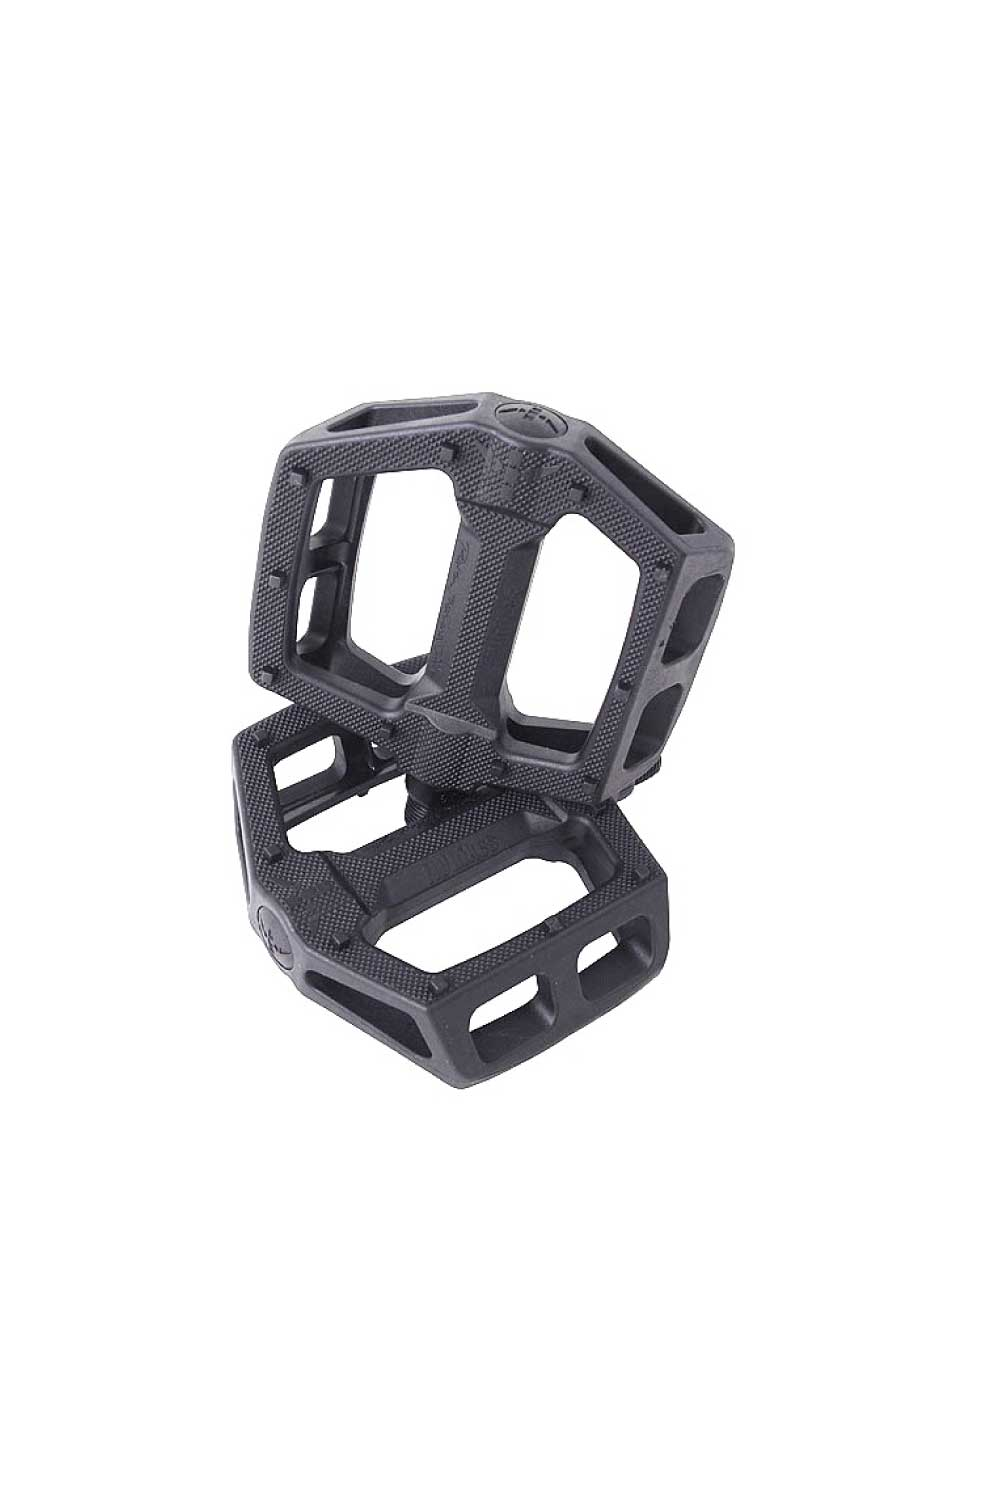 Fly Ruben Graphite Bike Pedals Black